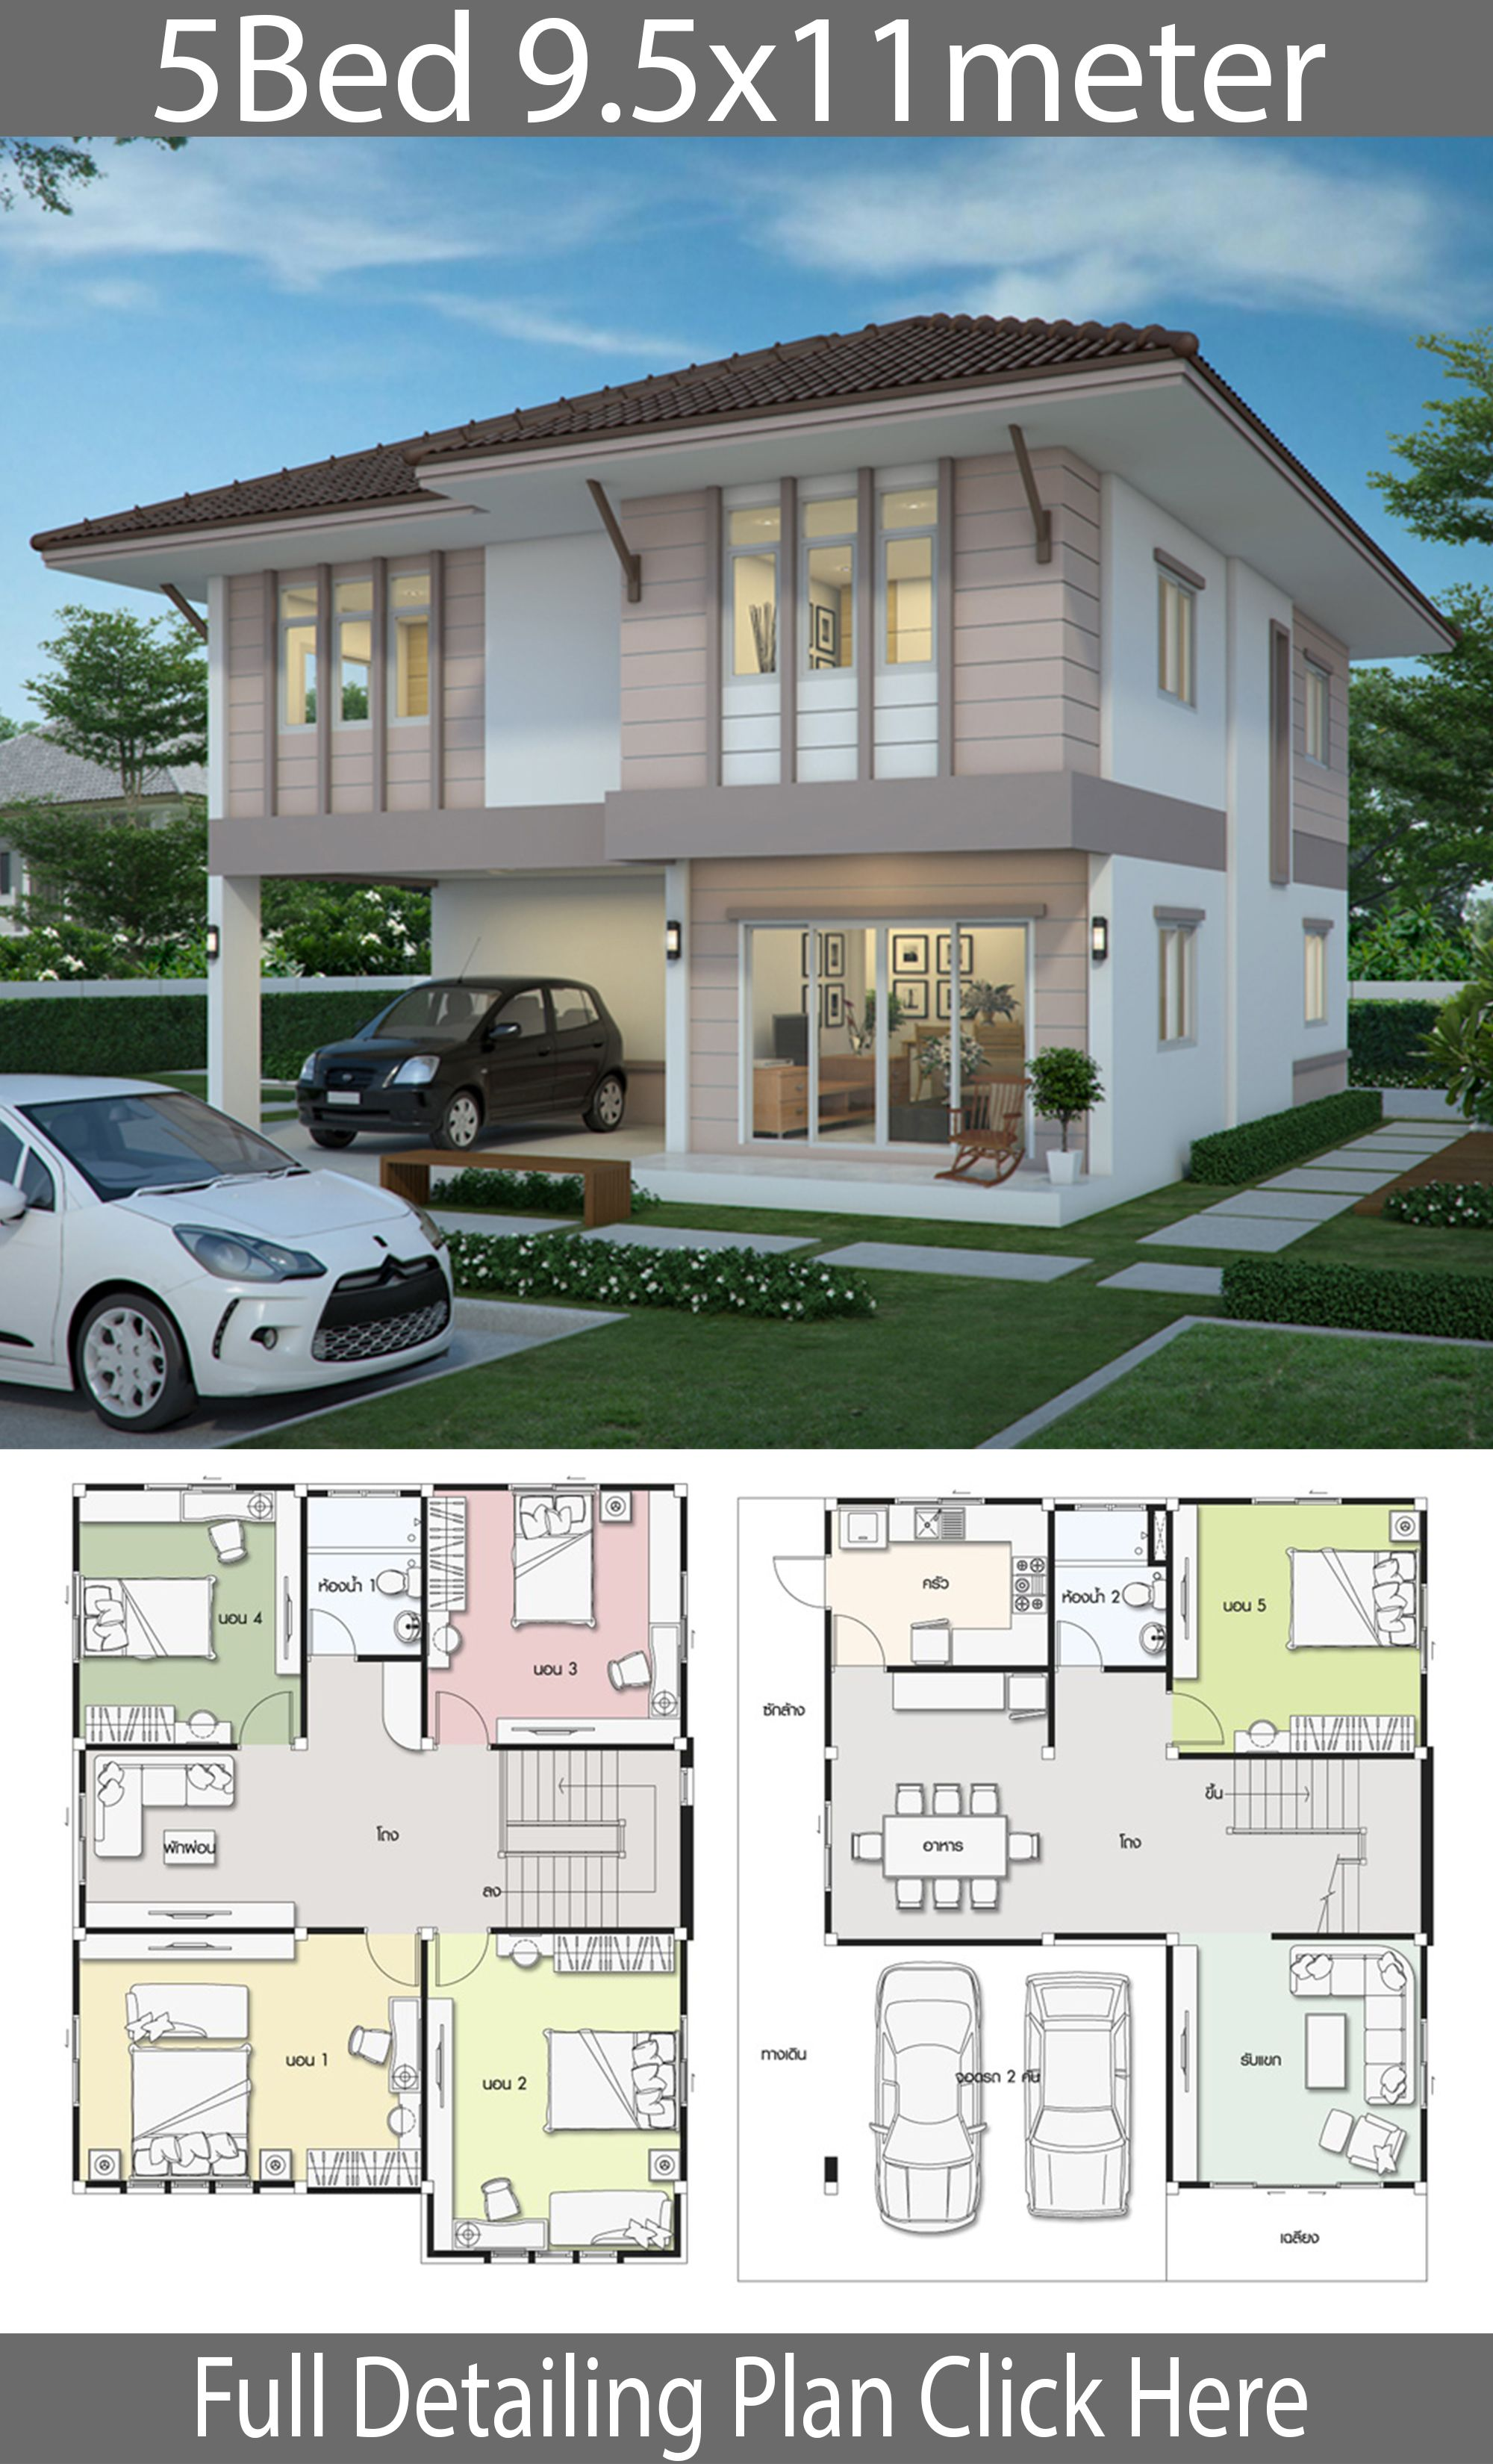 House Design Plan 9 5x11m With 5 Bedrooms House Idea Arsitektur Rumah Denah Rumah Rumah Indah